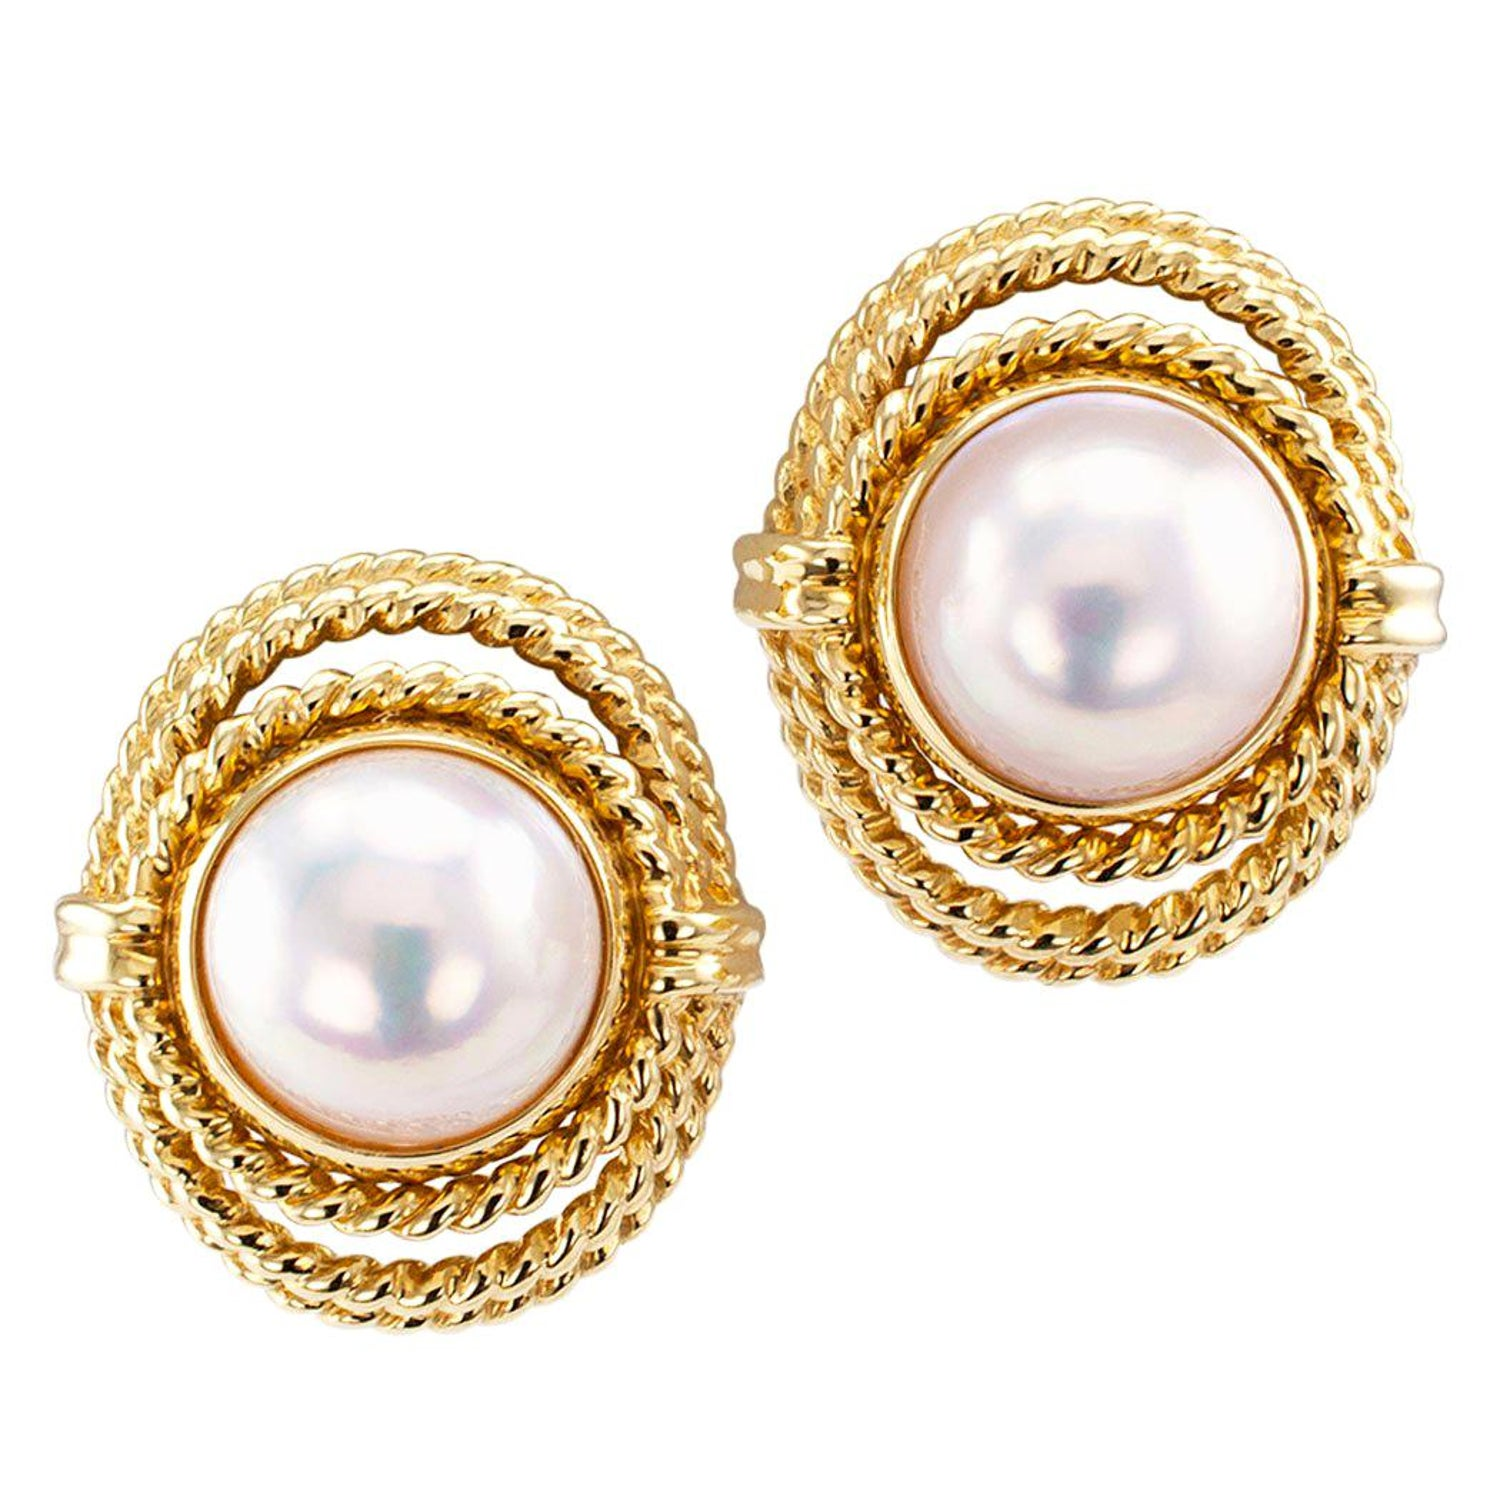 28a4933c5 Tiffany and Co. Mabe Pearl Gold Earrings at 1stdibs